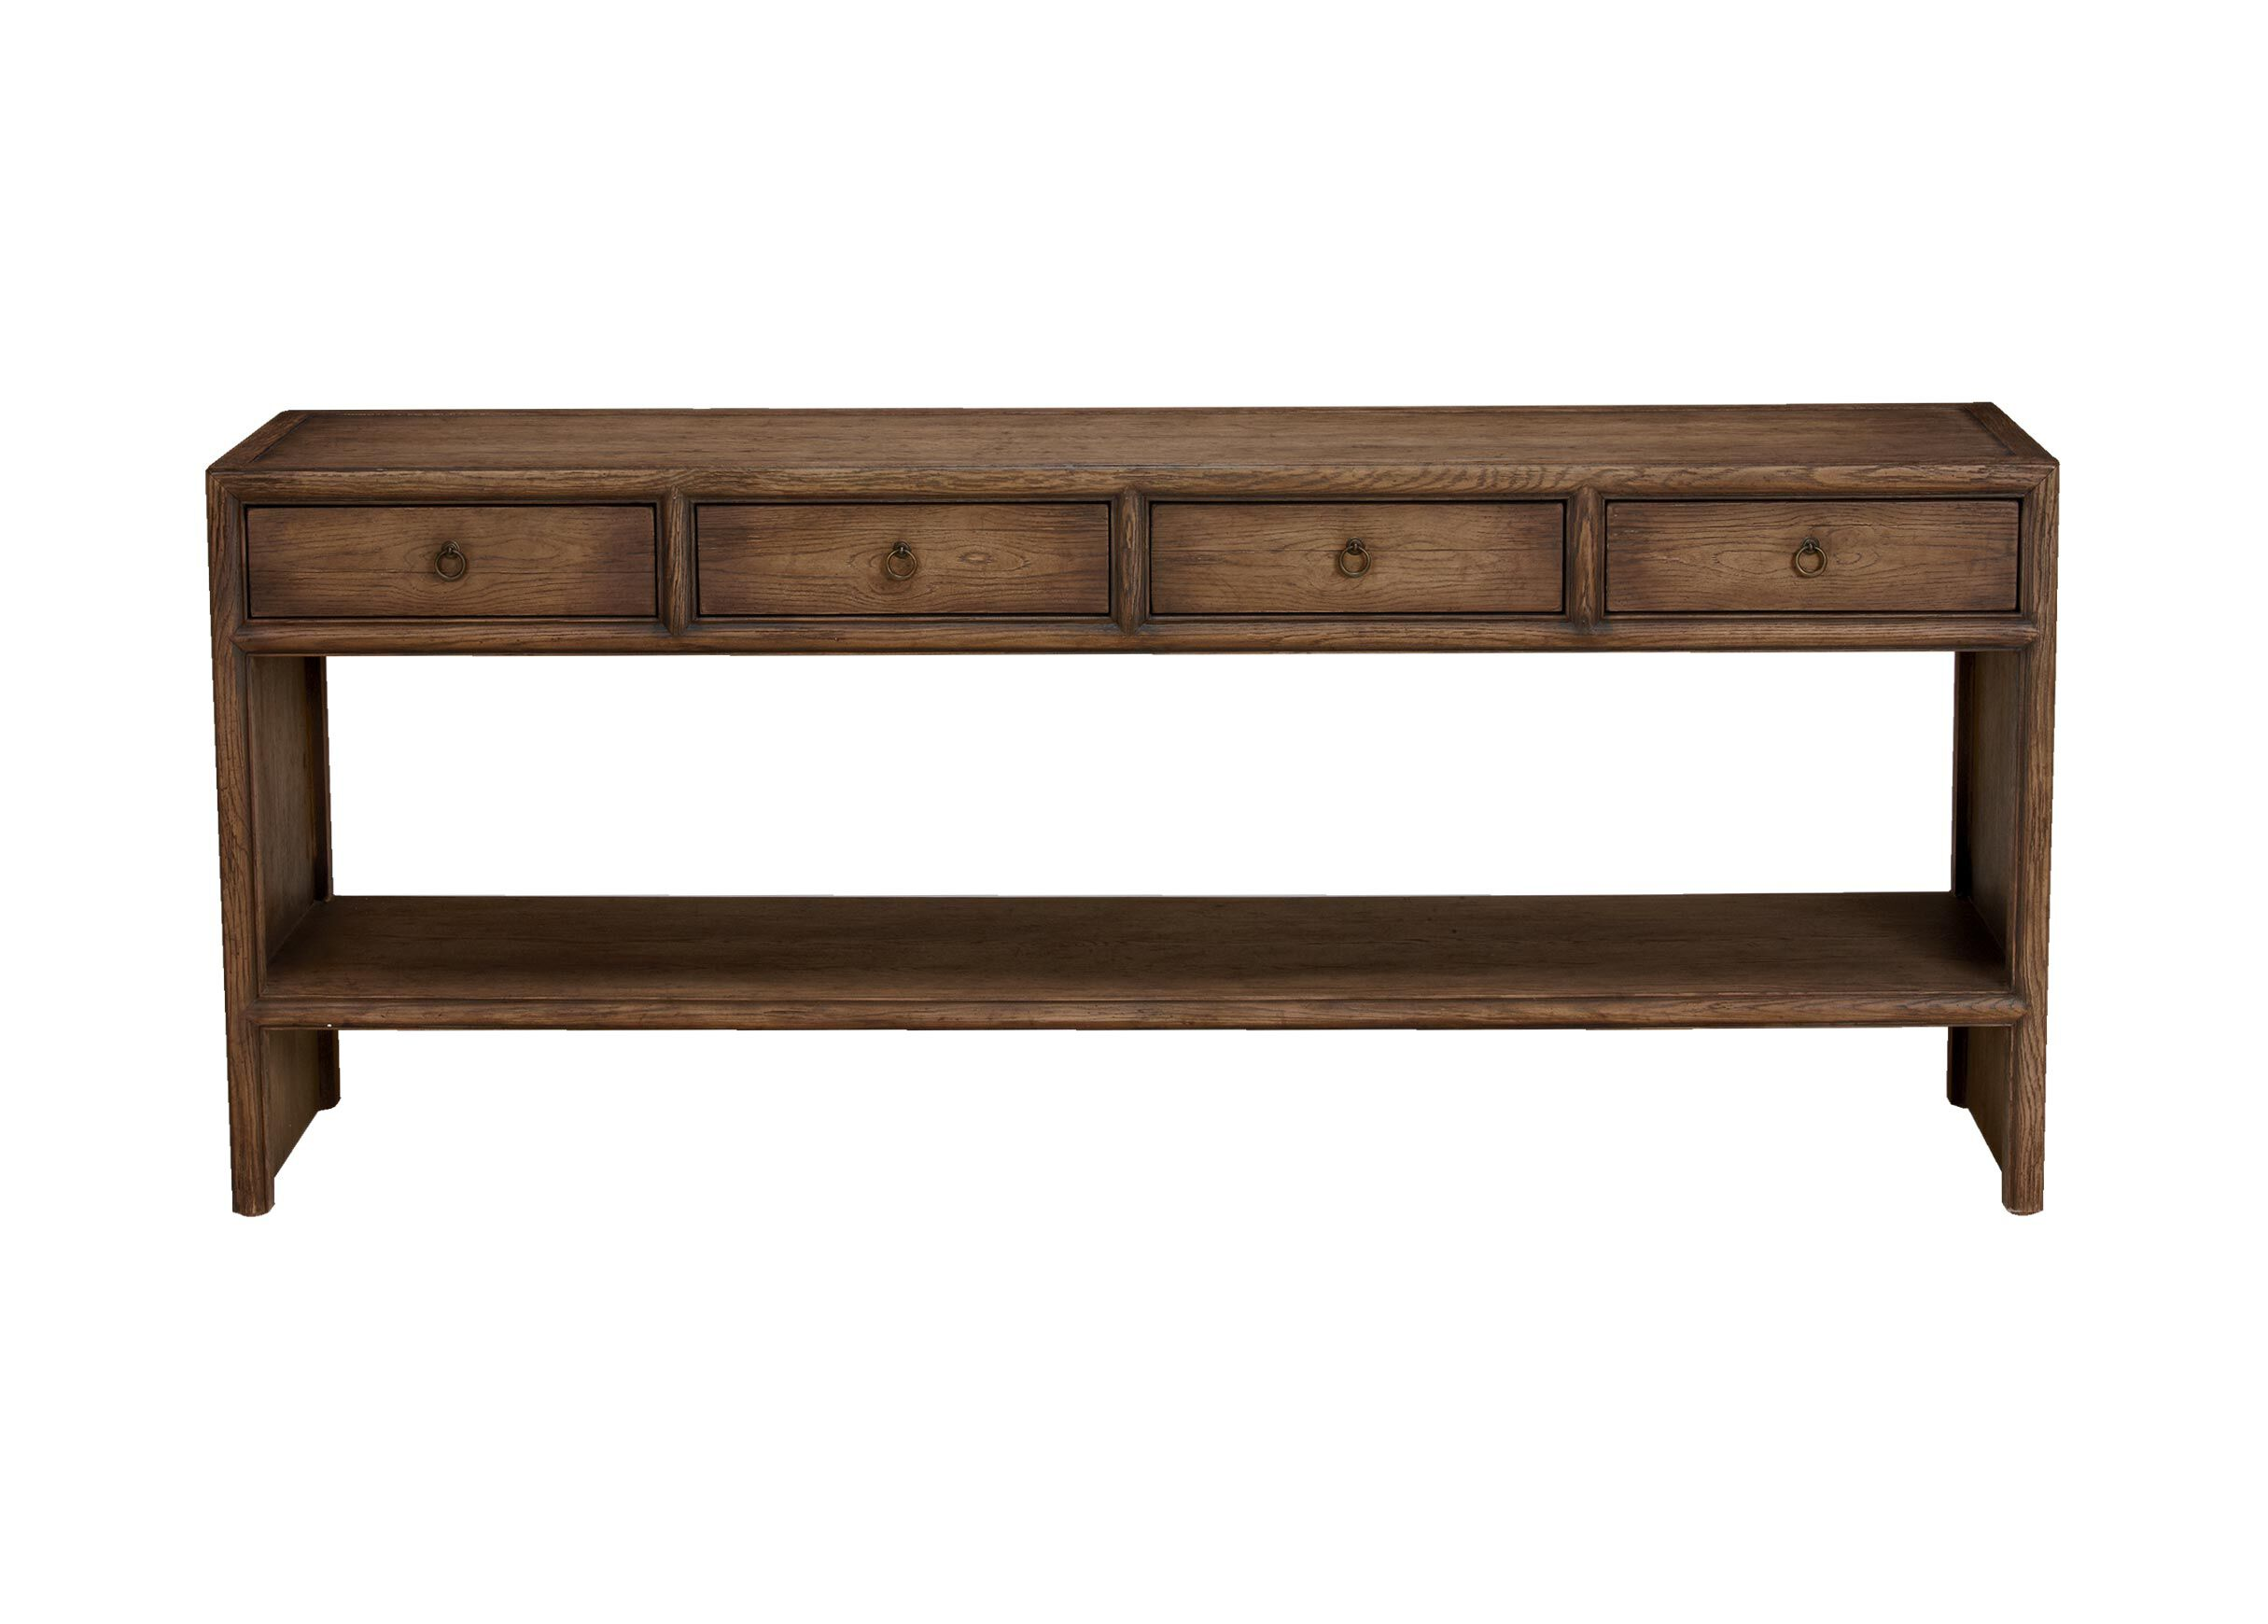 Images Large Shogun Console Table , , Large_gray